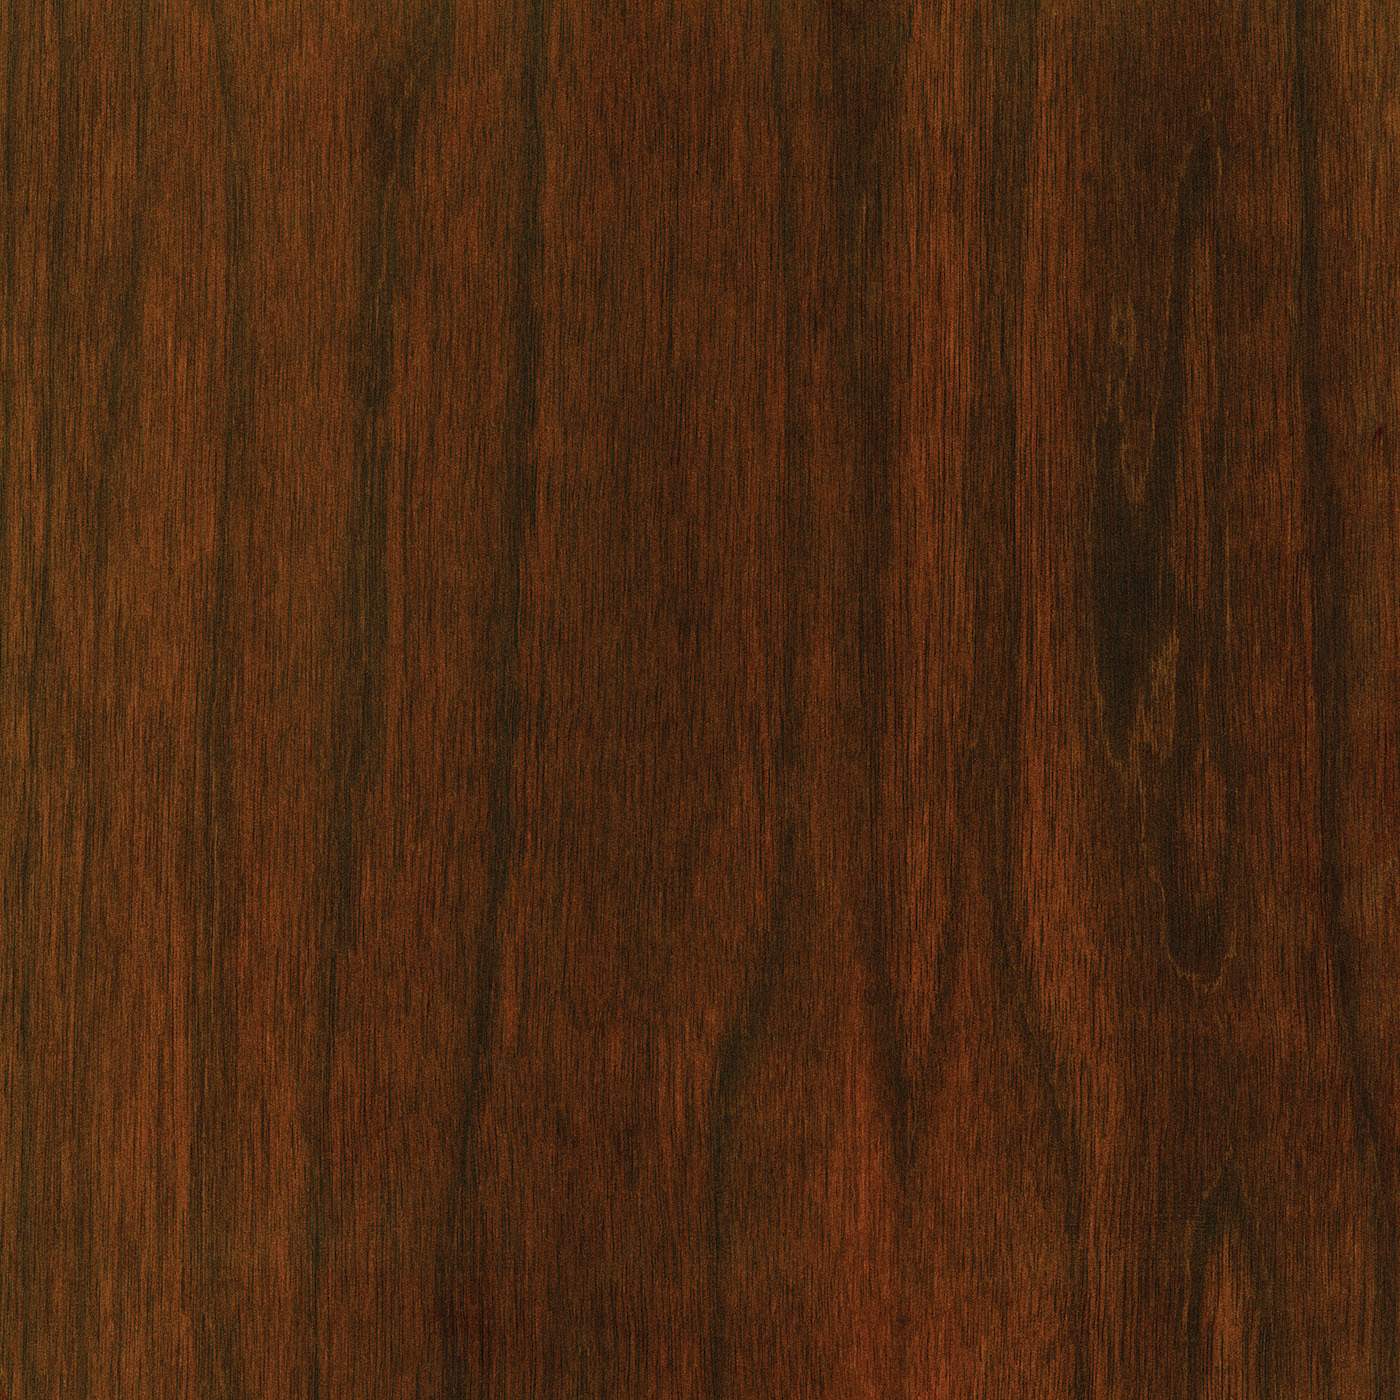 978 American Walnut - Lamin-Art